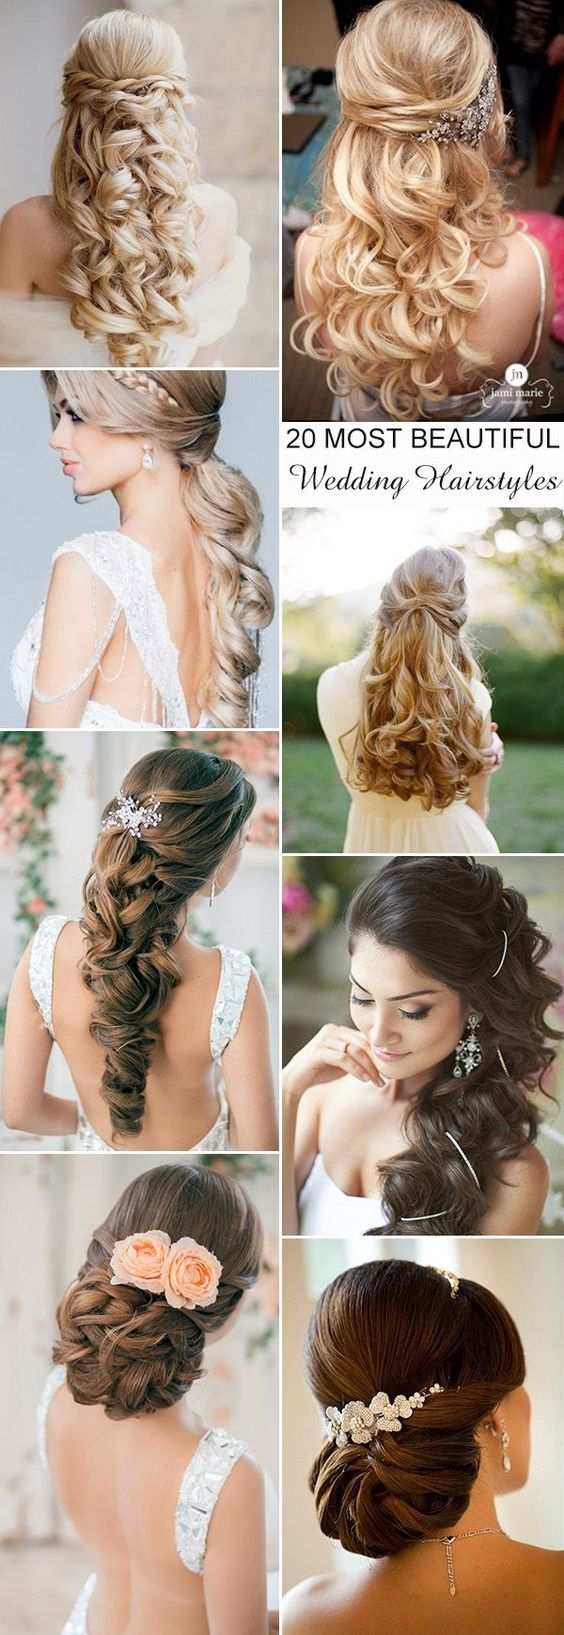 The best images about dresses on pinterest maggie sottero